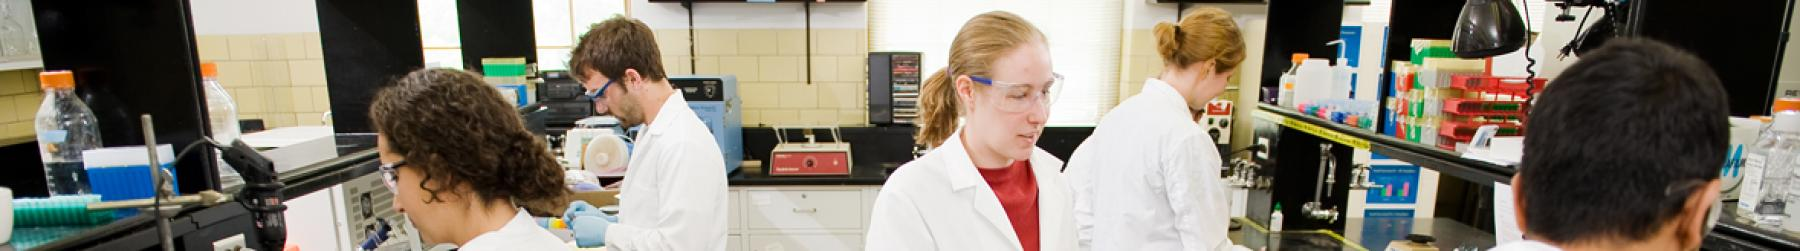 Students in lab coats work industriously at their workstations in a chemistry lab.